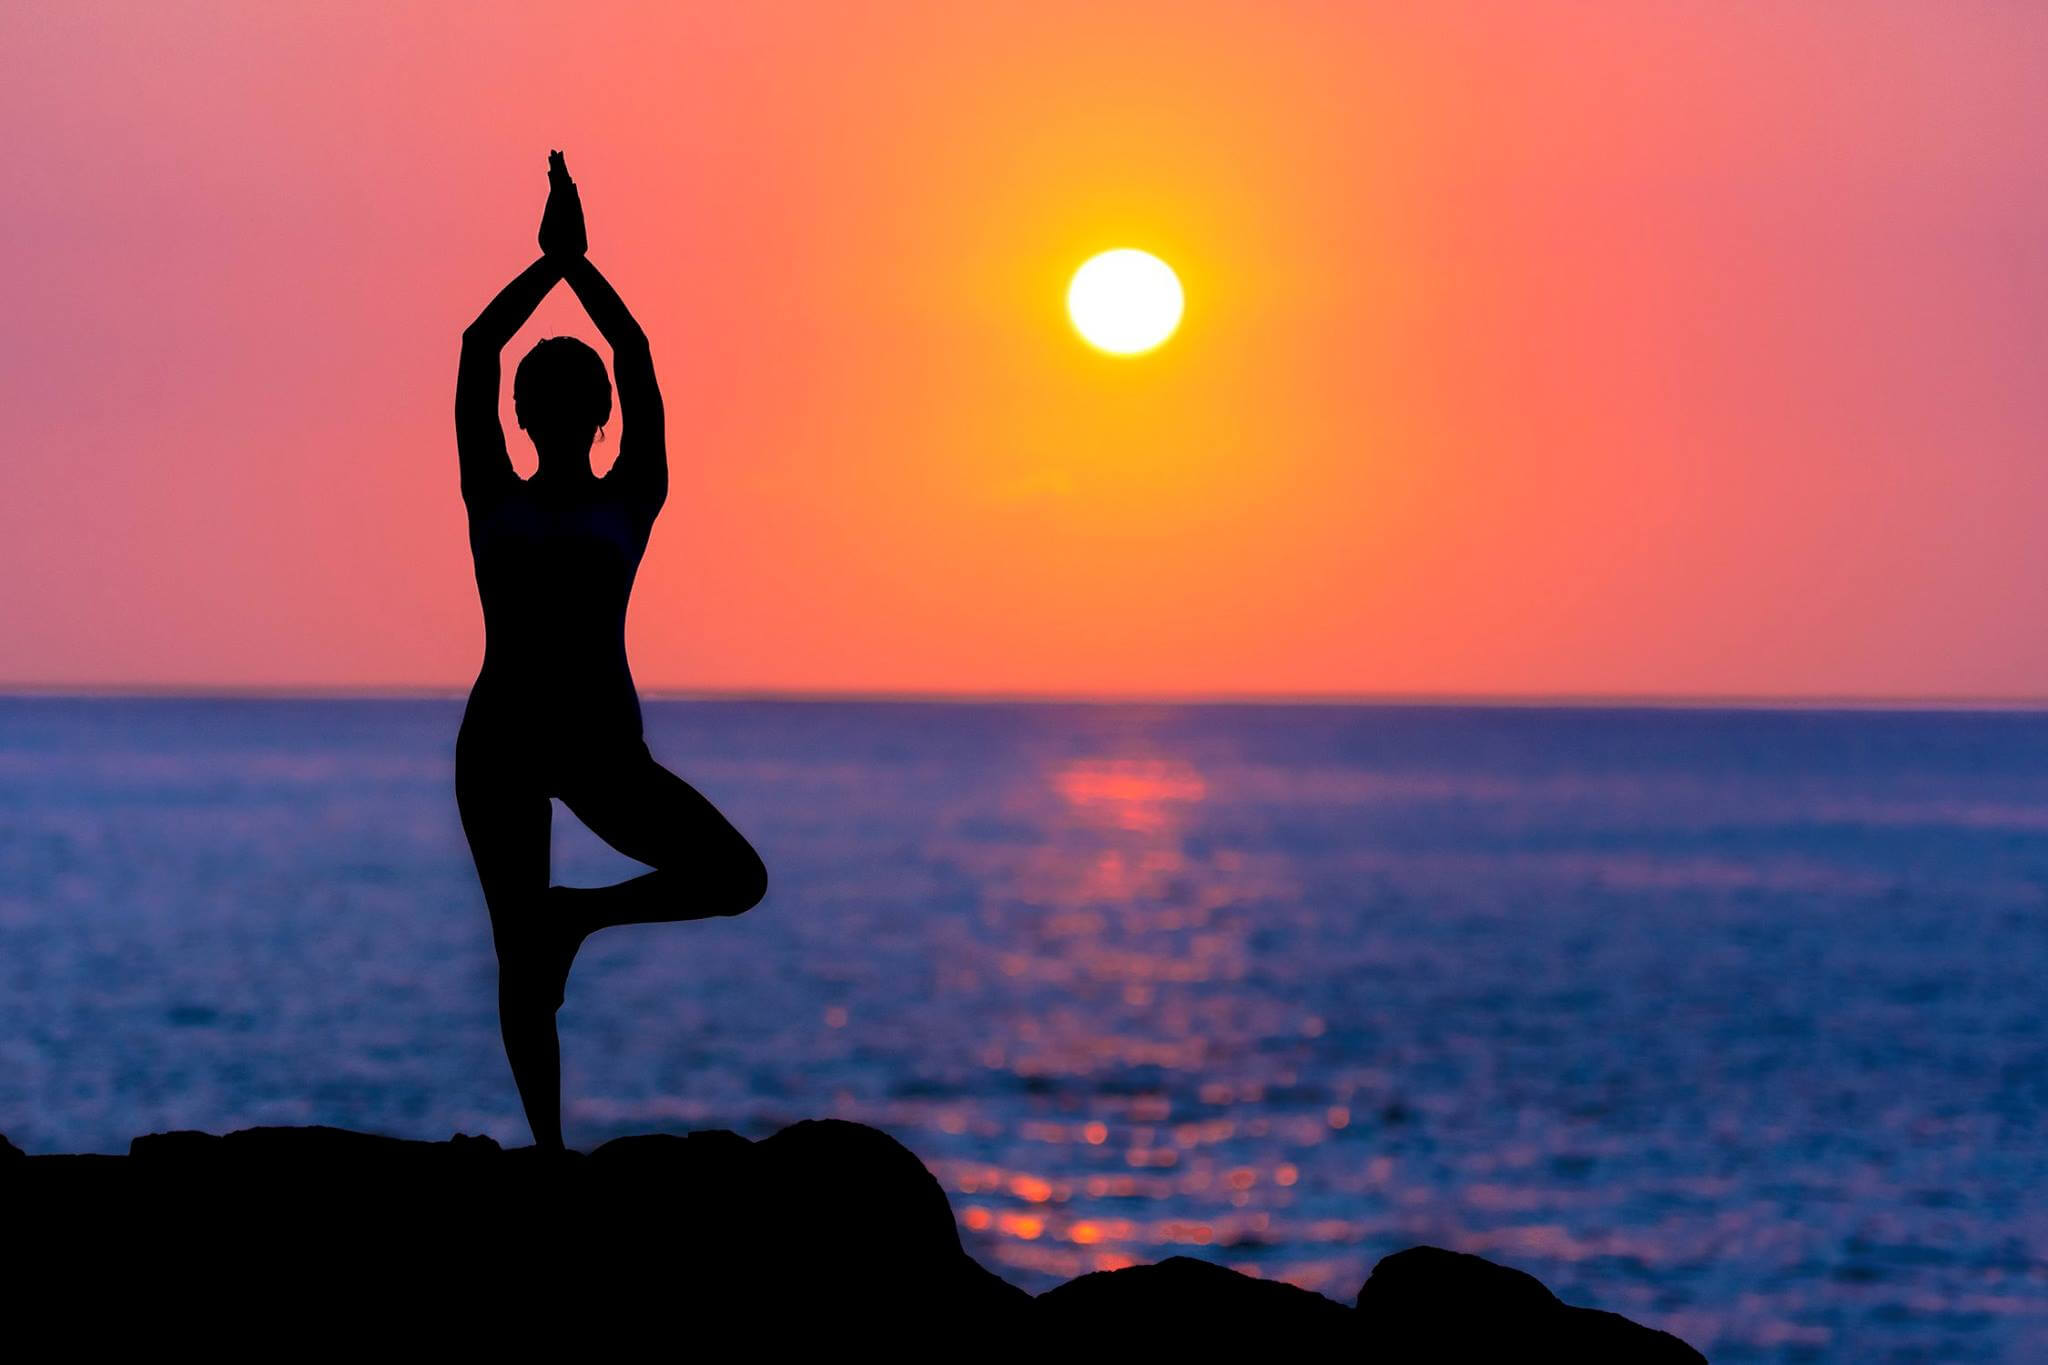 Canva Silhouette of Person Doing Yoga Near Body of Water Lets Ring In The New Year